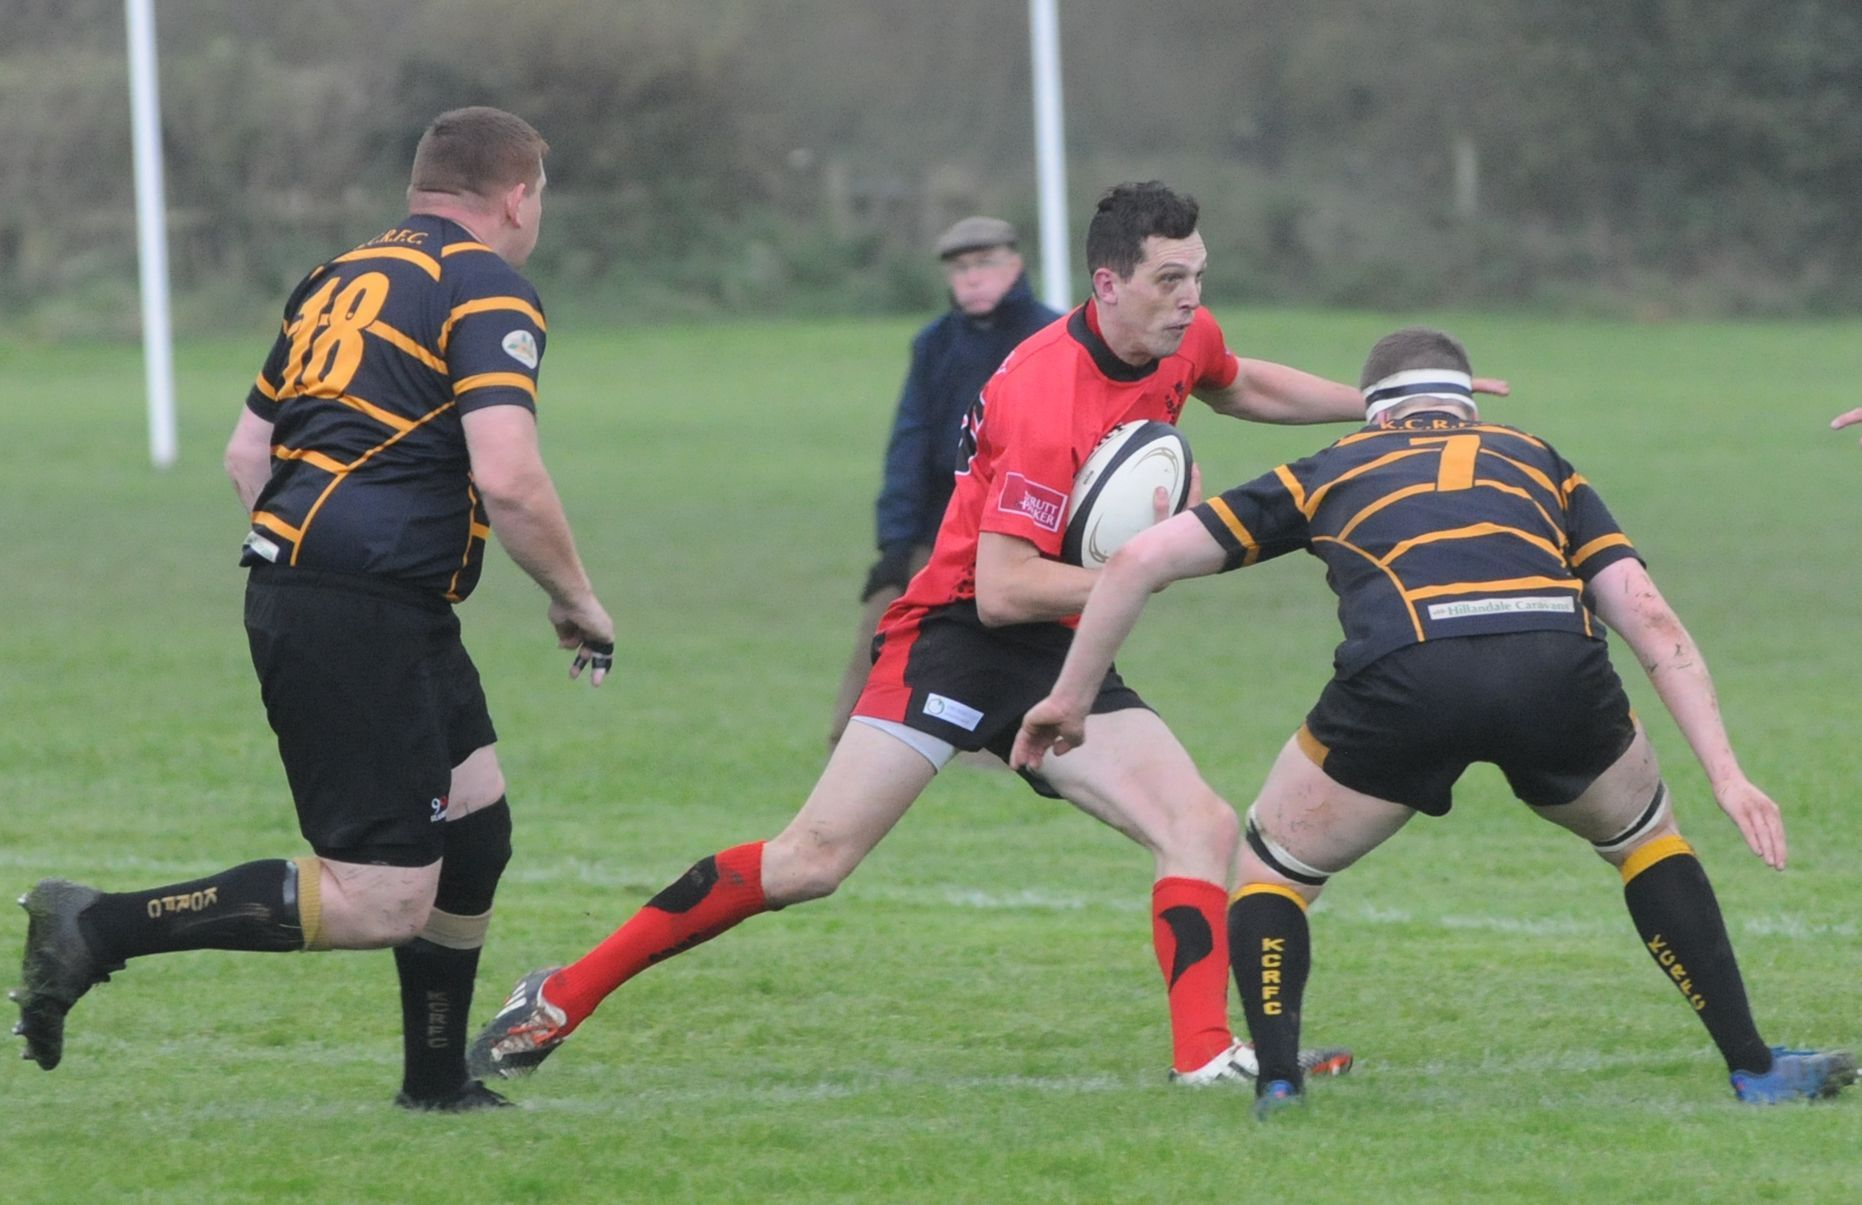 Joe Doyle, seen here in a previous game, scored a try for Ludlow, but it was not enough as Leek won 12-10